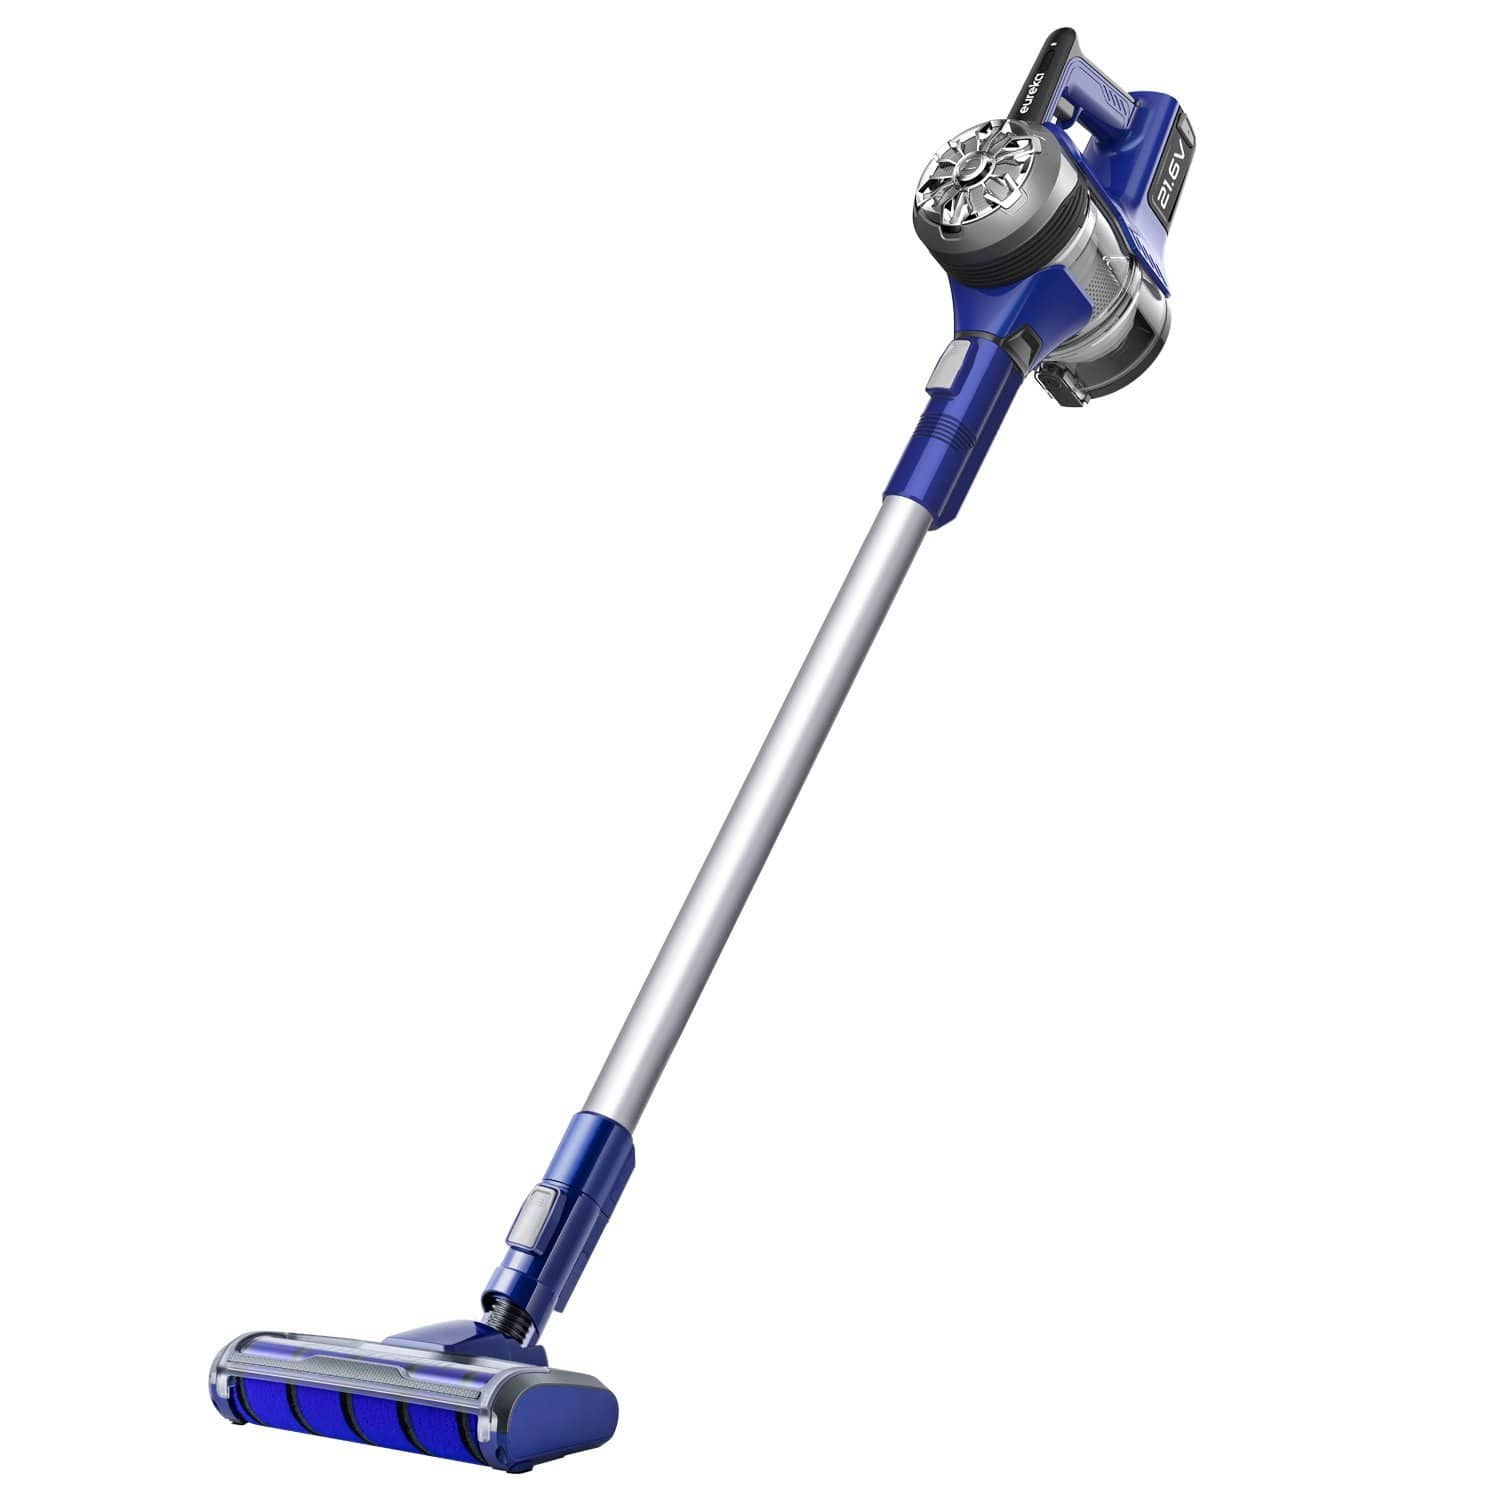 $149.99 for Eureka NEC122A Power Plush Cordless 2-in-1 Stick Vacuum, Rechargeable Lithium Ion Battery with Wall Mount, Grey on Blue Violet